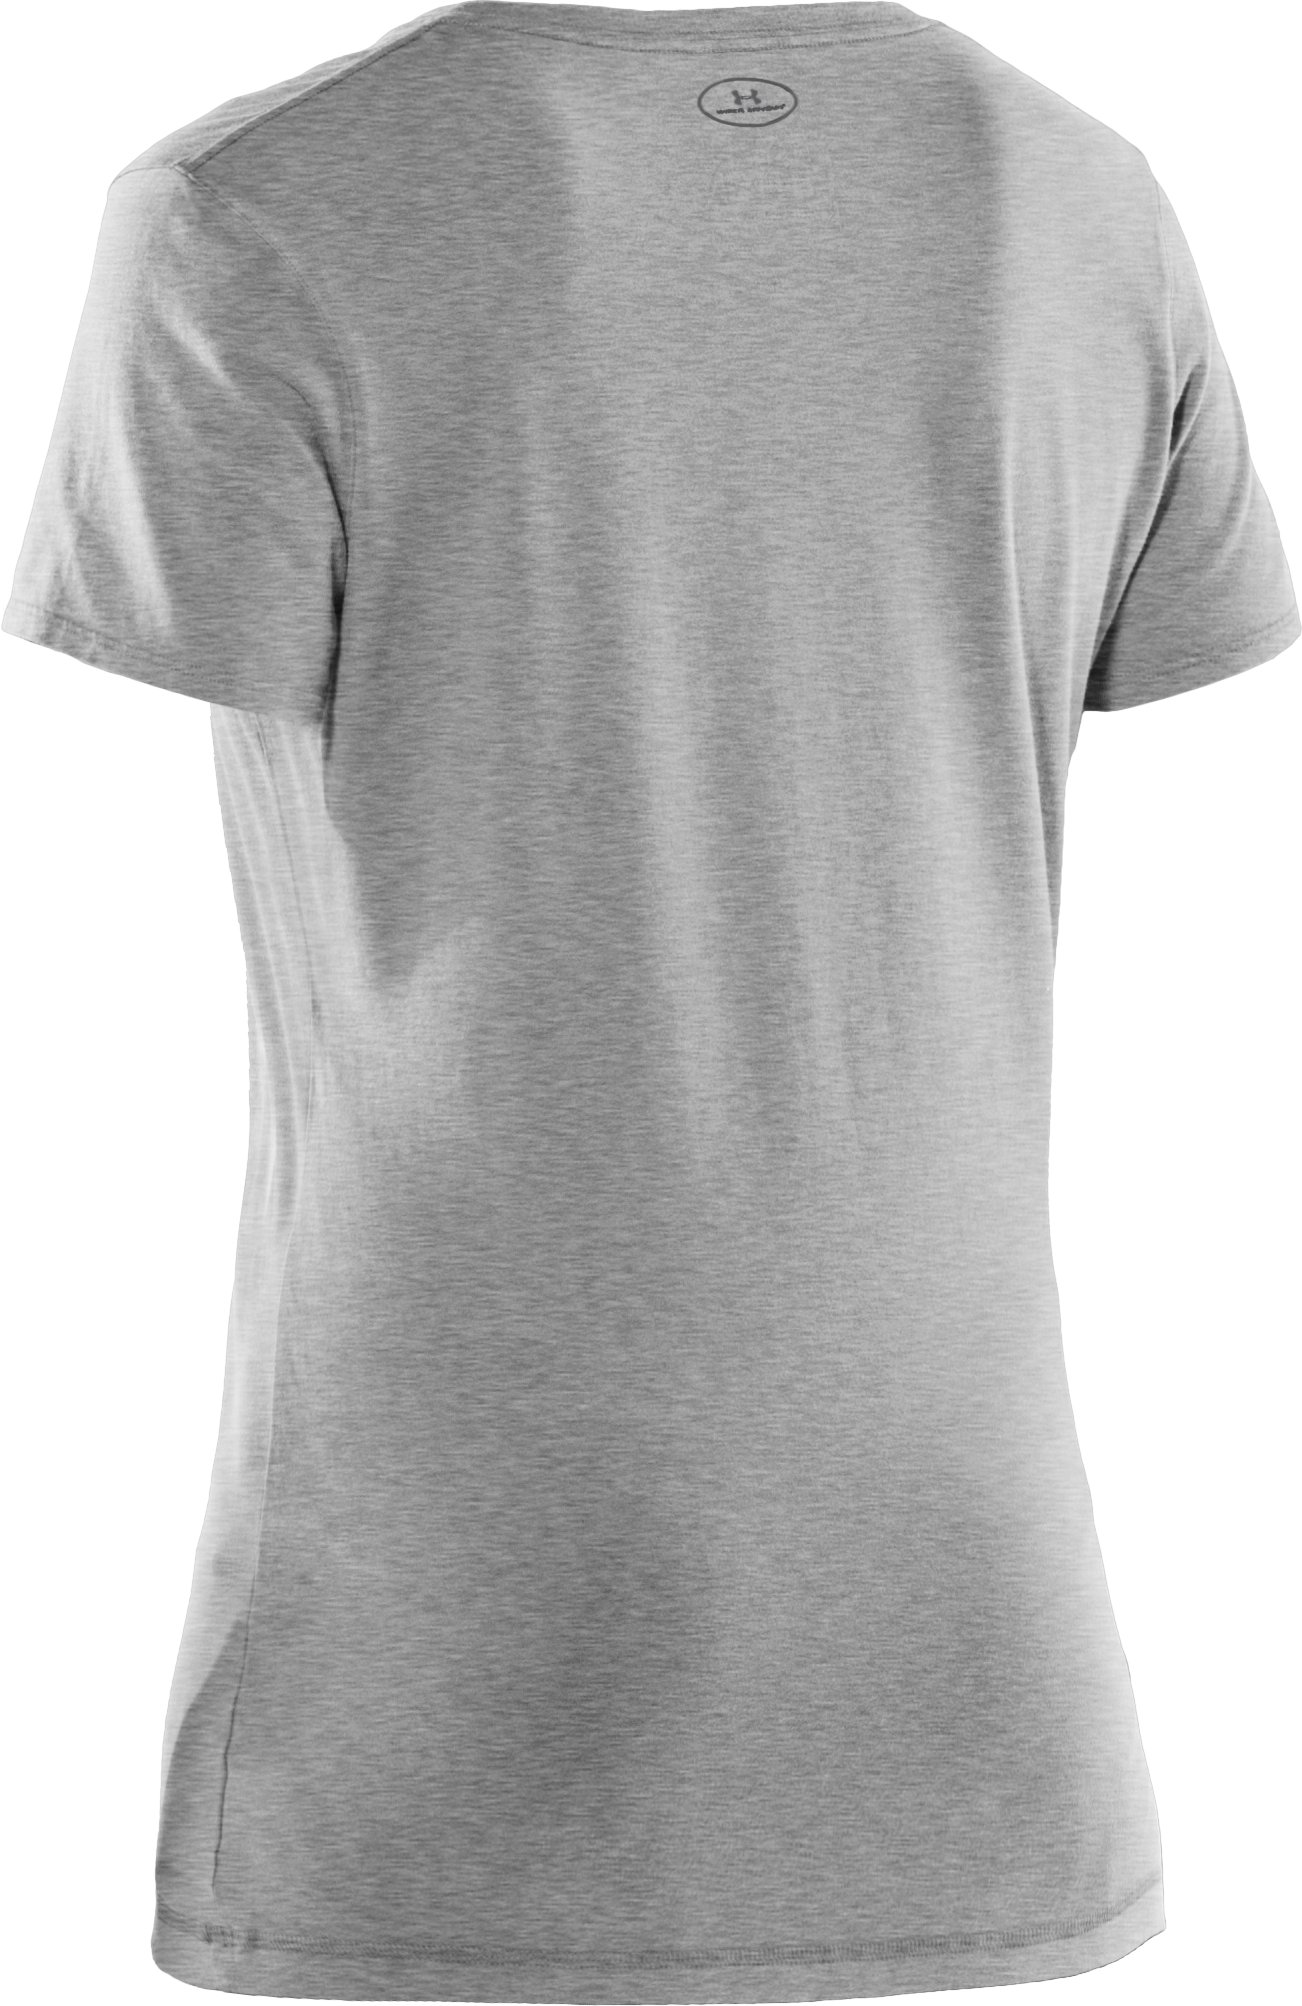 Women's Charged Cotton® Sassy Scoop T-Shirt, True Gray Heather